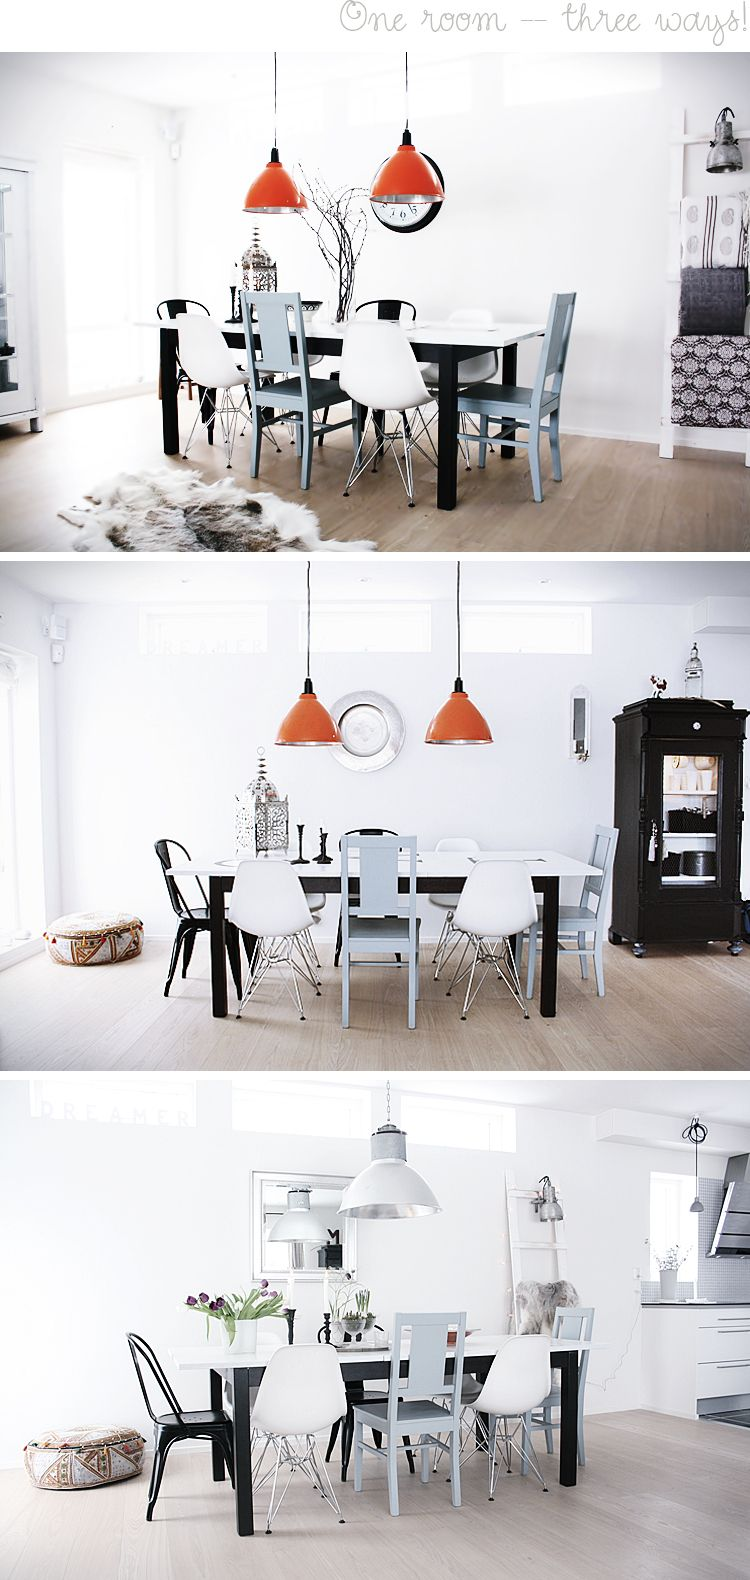 Swedish Home of Anna Malin | Interiors, Mismatched chairs and Dining